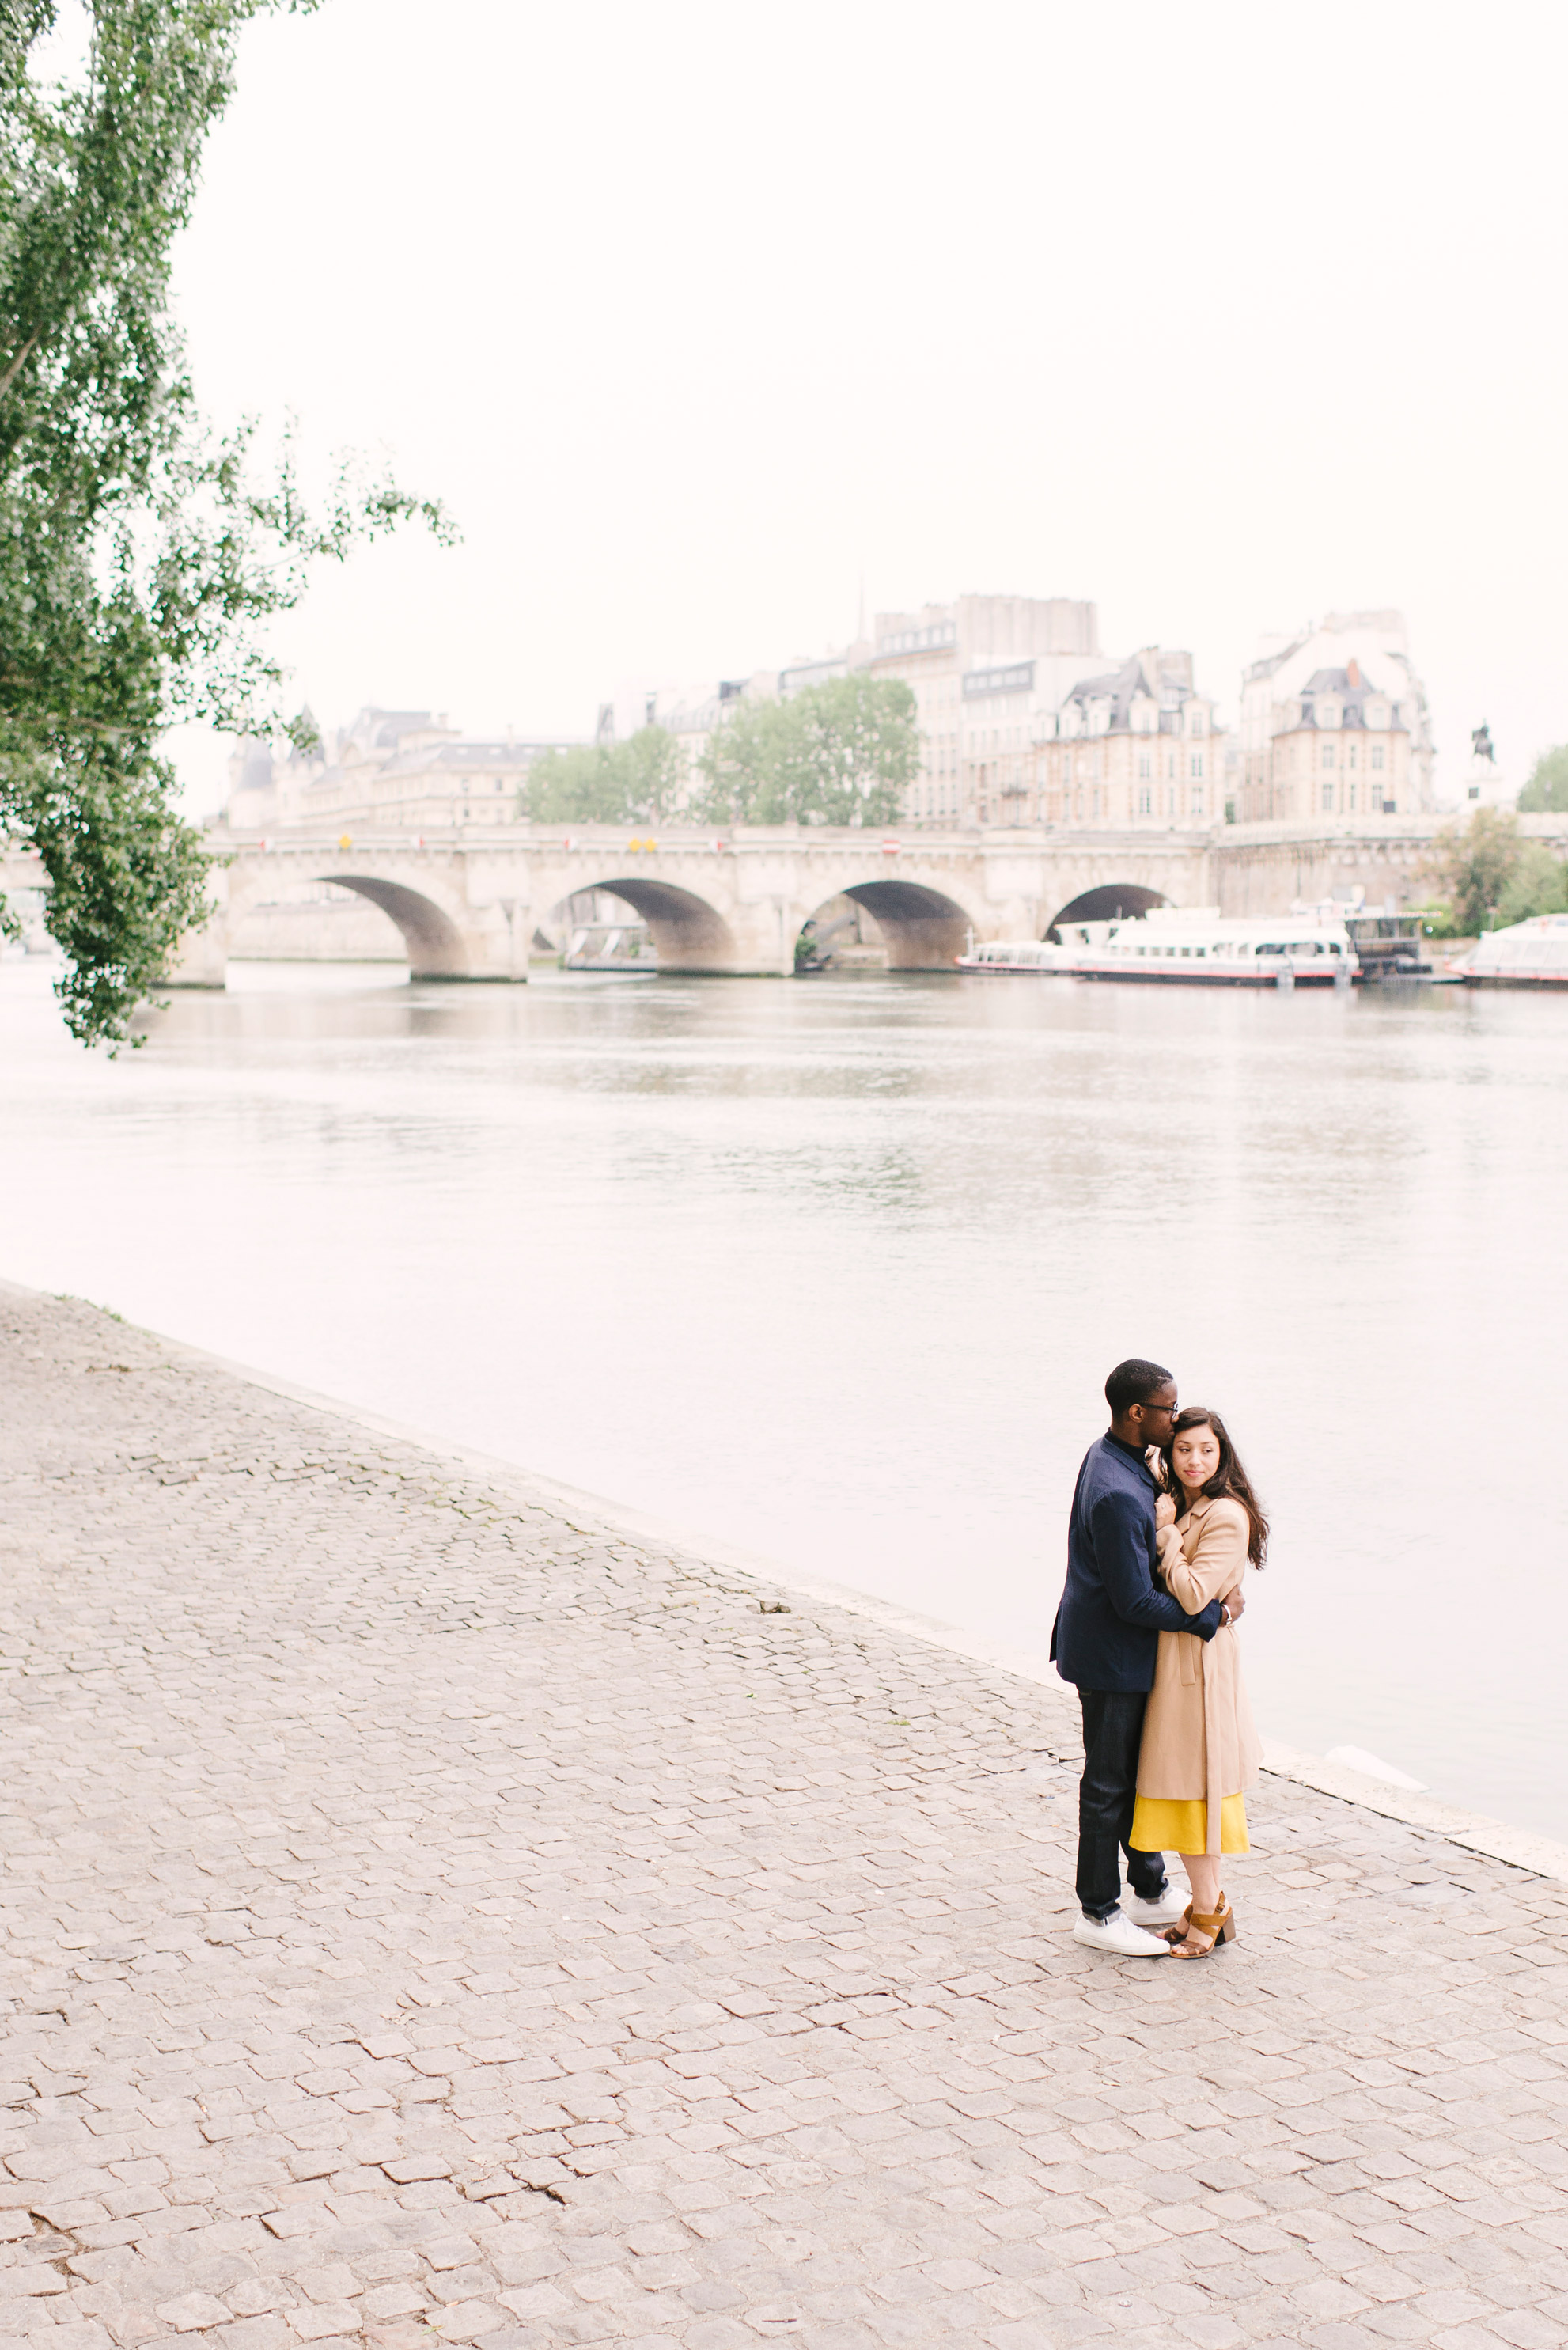 Couple-photoshoot-Paris-Pont-des-arts-Louvre-PalaisRoyale-004.jpg